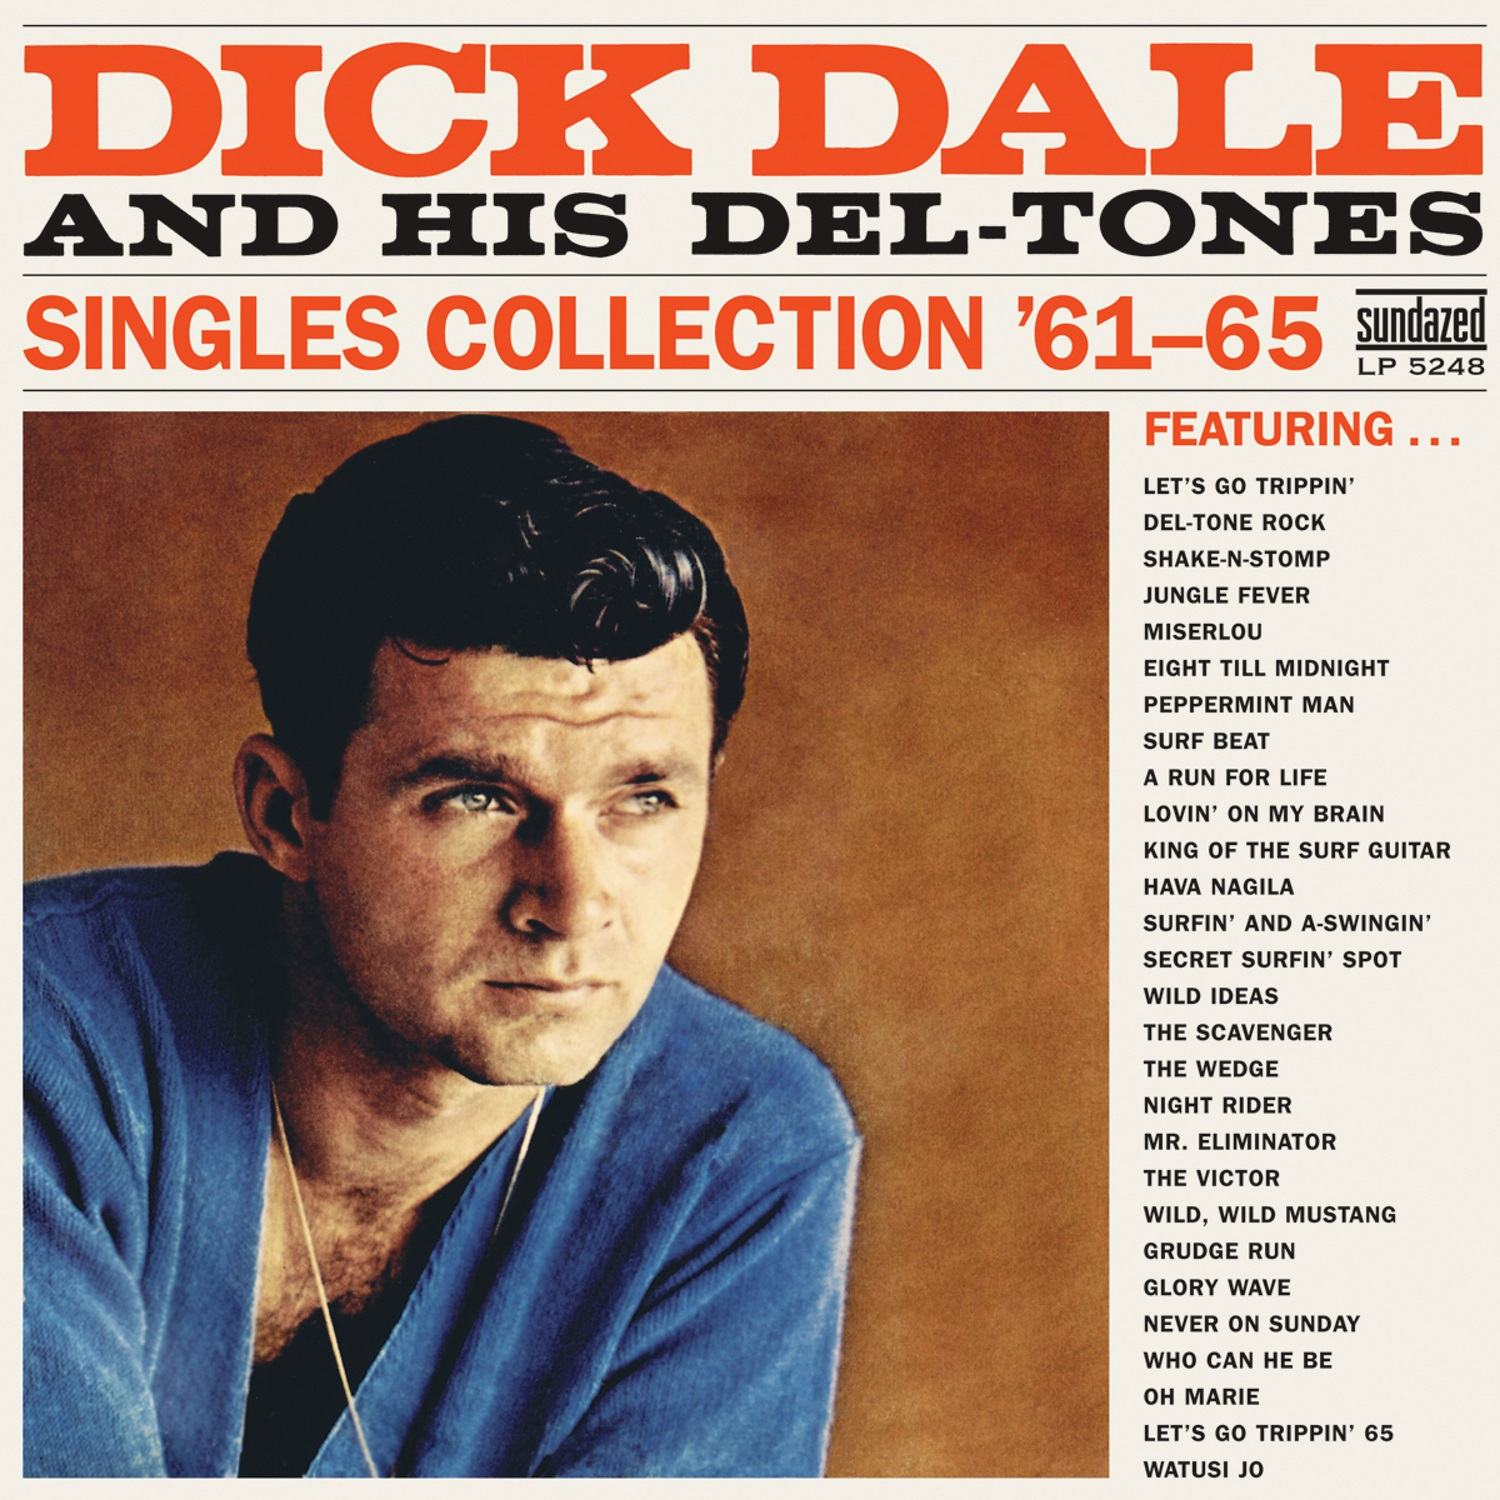 Dick Dale and His Del-Tones - Singles Collection '61-65 MONO 2-LP Set